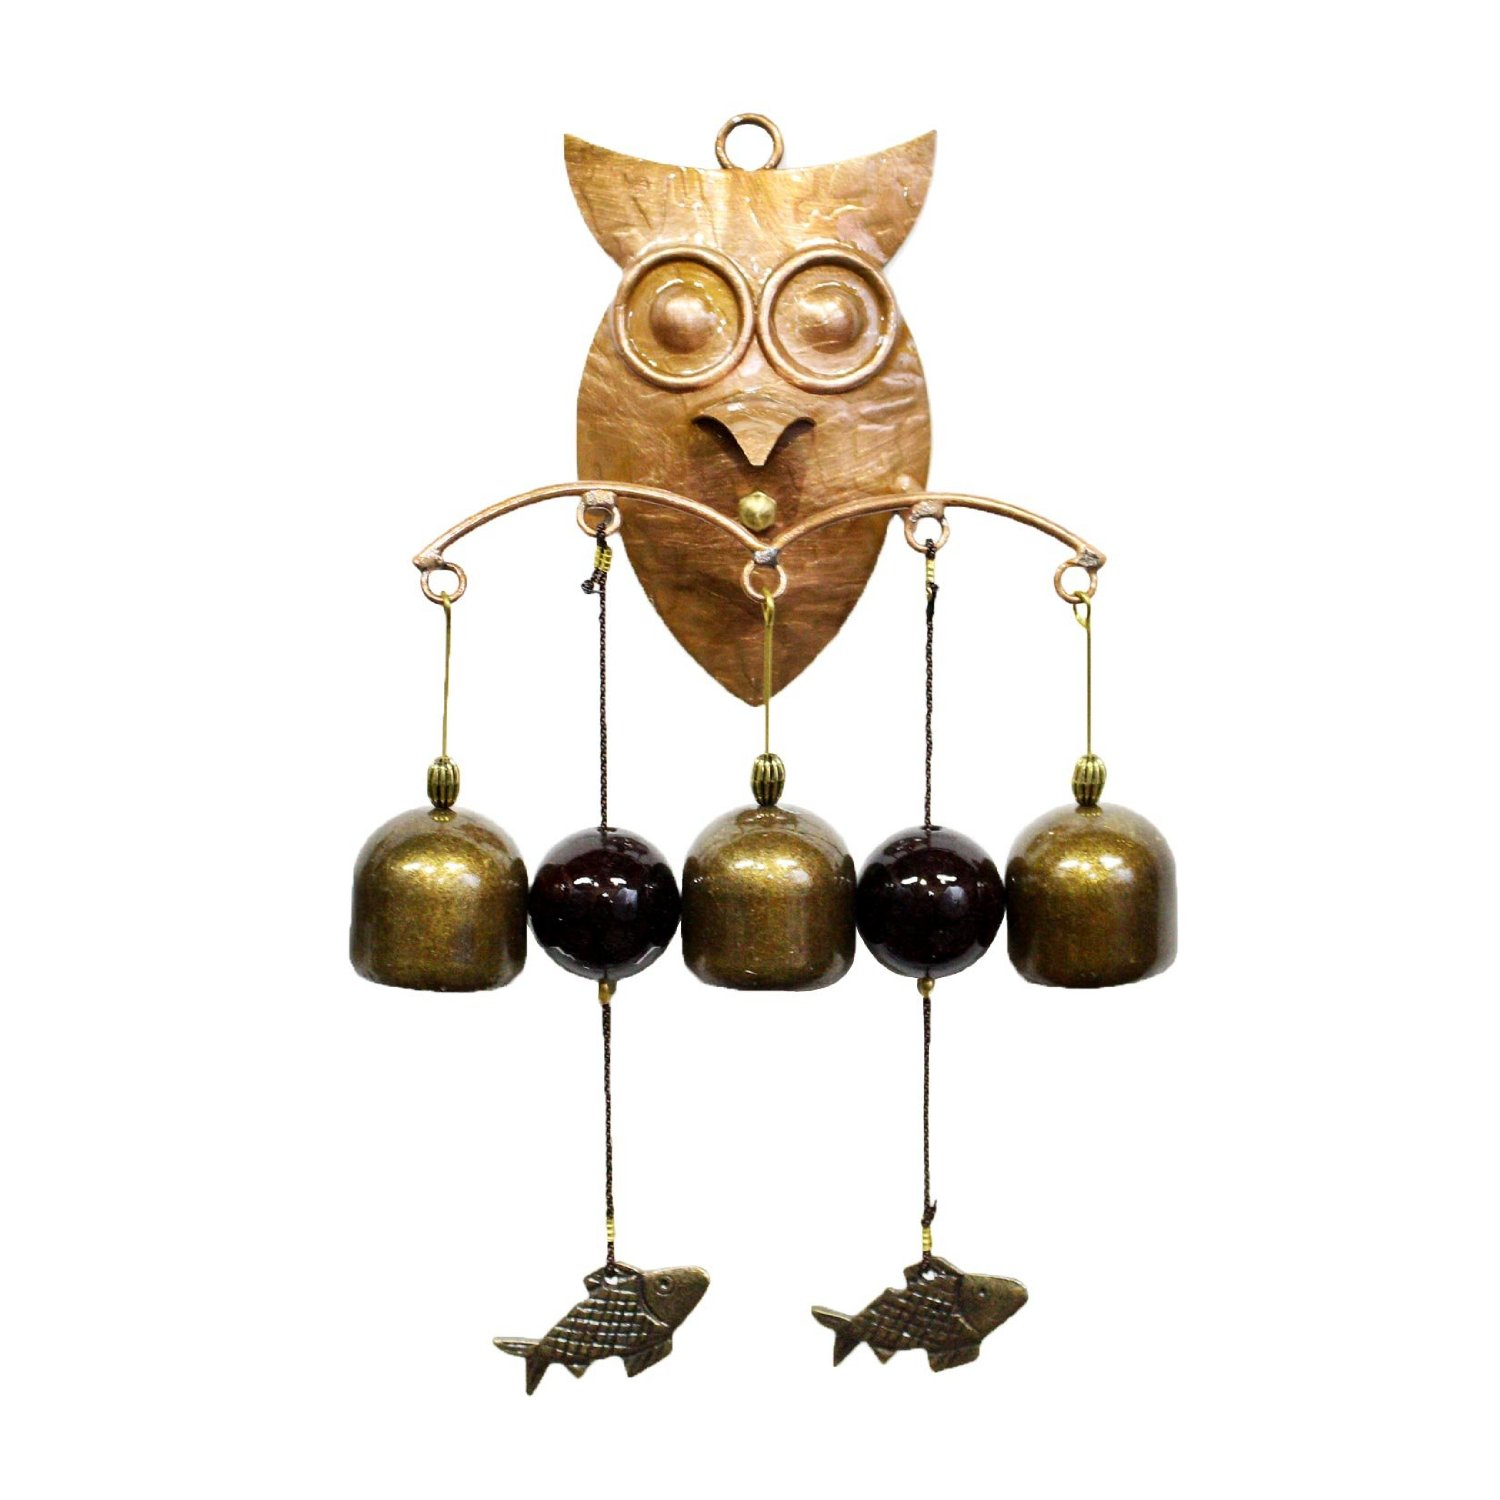 Cheap Store Door Chime Find Deals On Line At How To Add A Second Doorbell Get Quotations Brass Owl Bell Entrance Wind Shop Keeper Handmade 0208